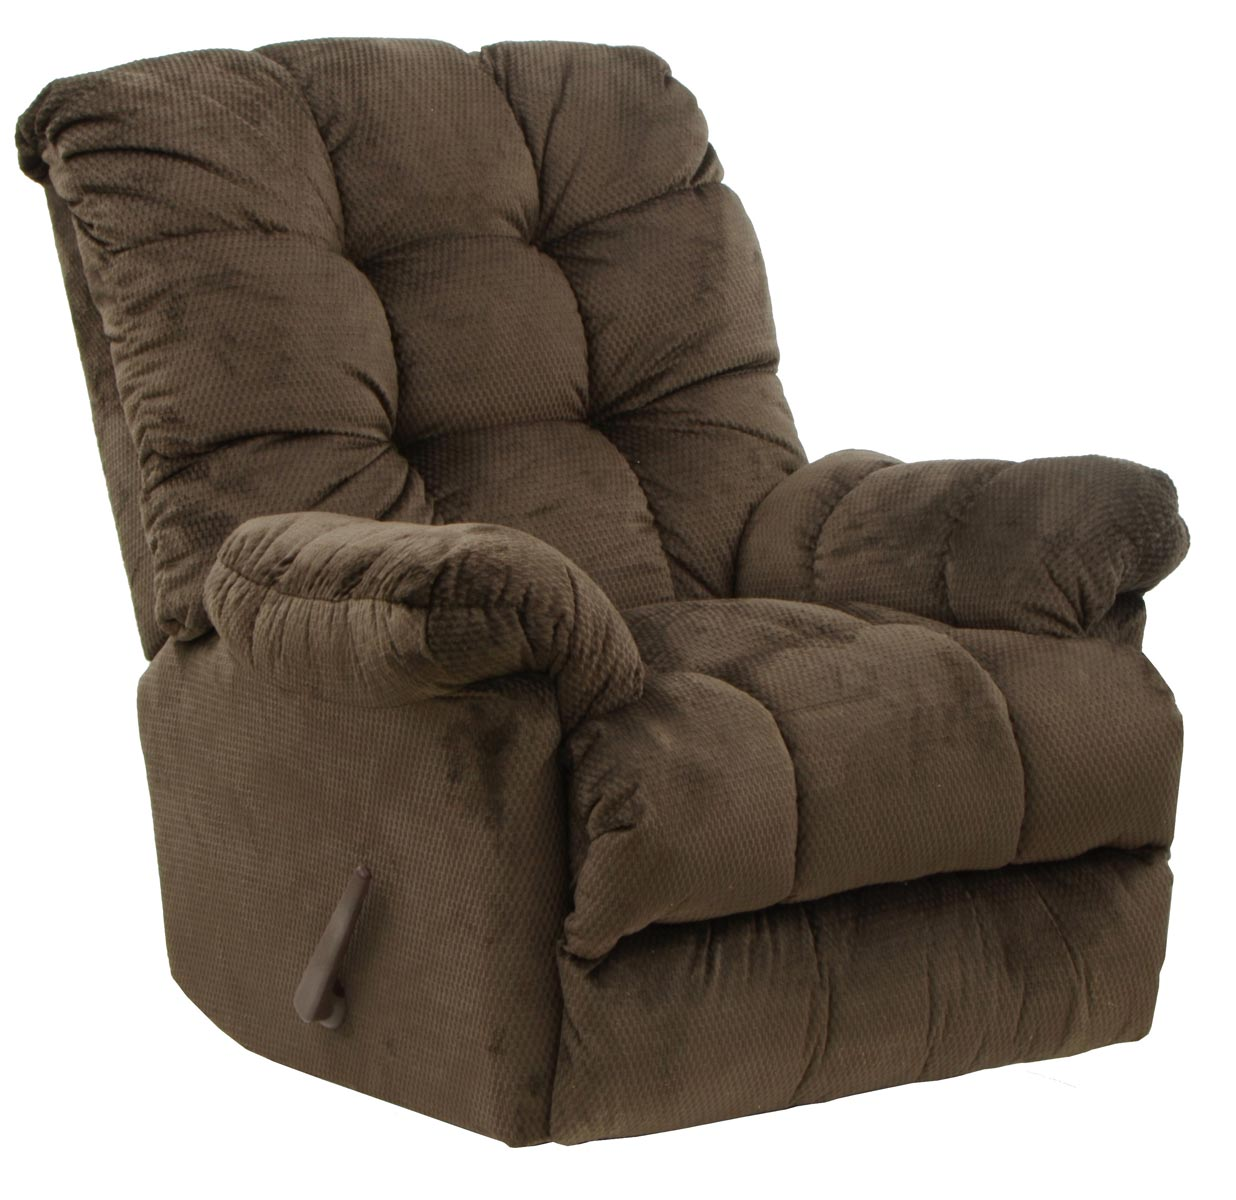 Catnapper nettles chaise rocker recliner with deluxe heat for Chaise and recliner